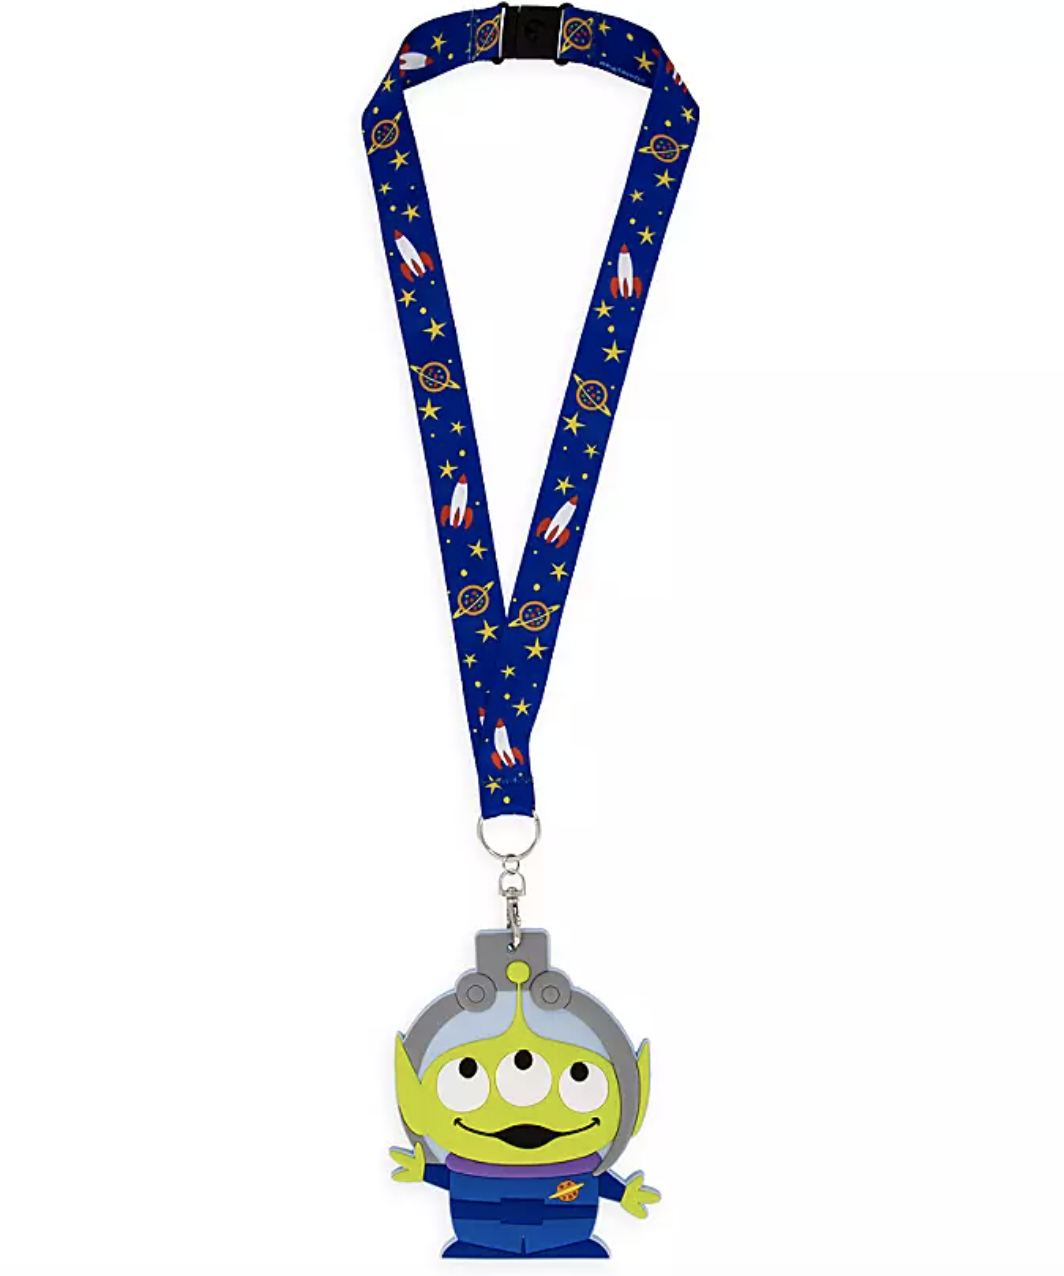 a blue lanyard with space design on it and a rubberized toy story alien within the claw hanging from it